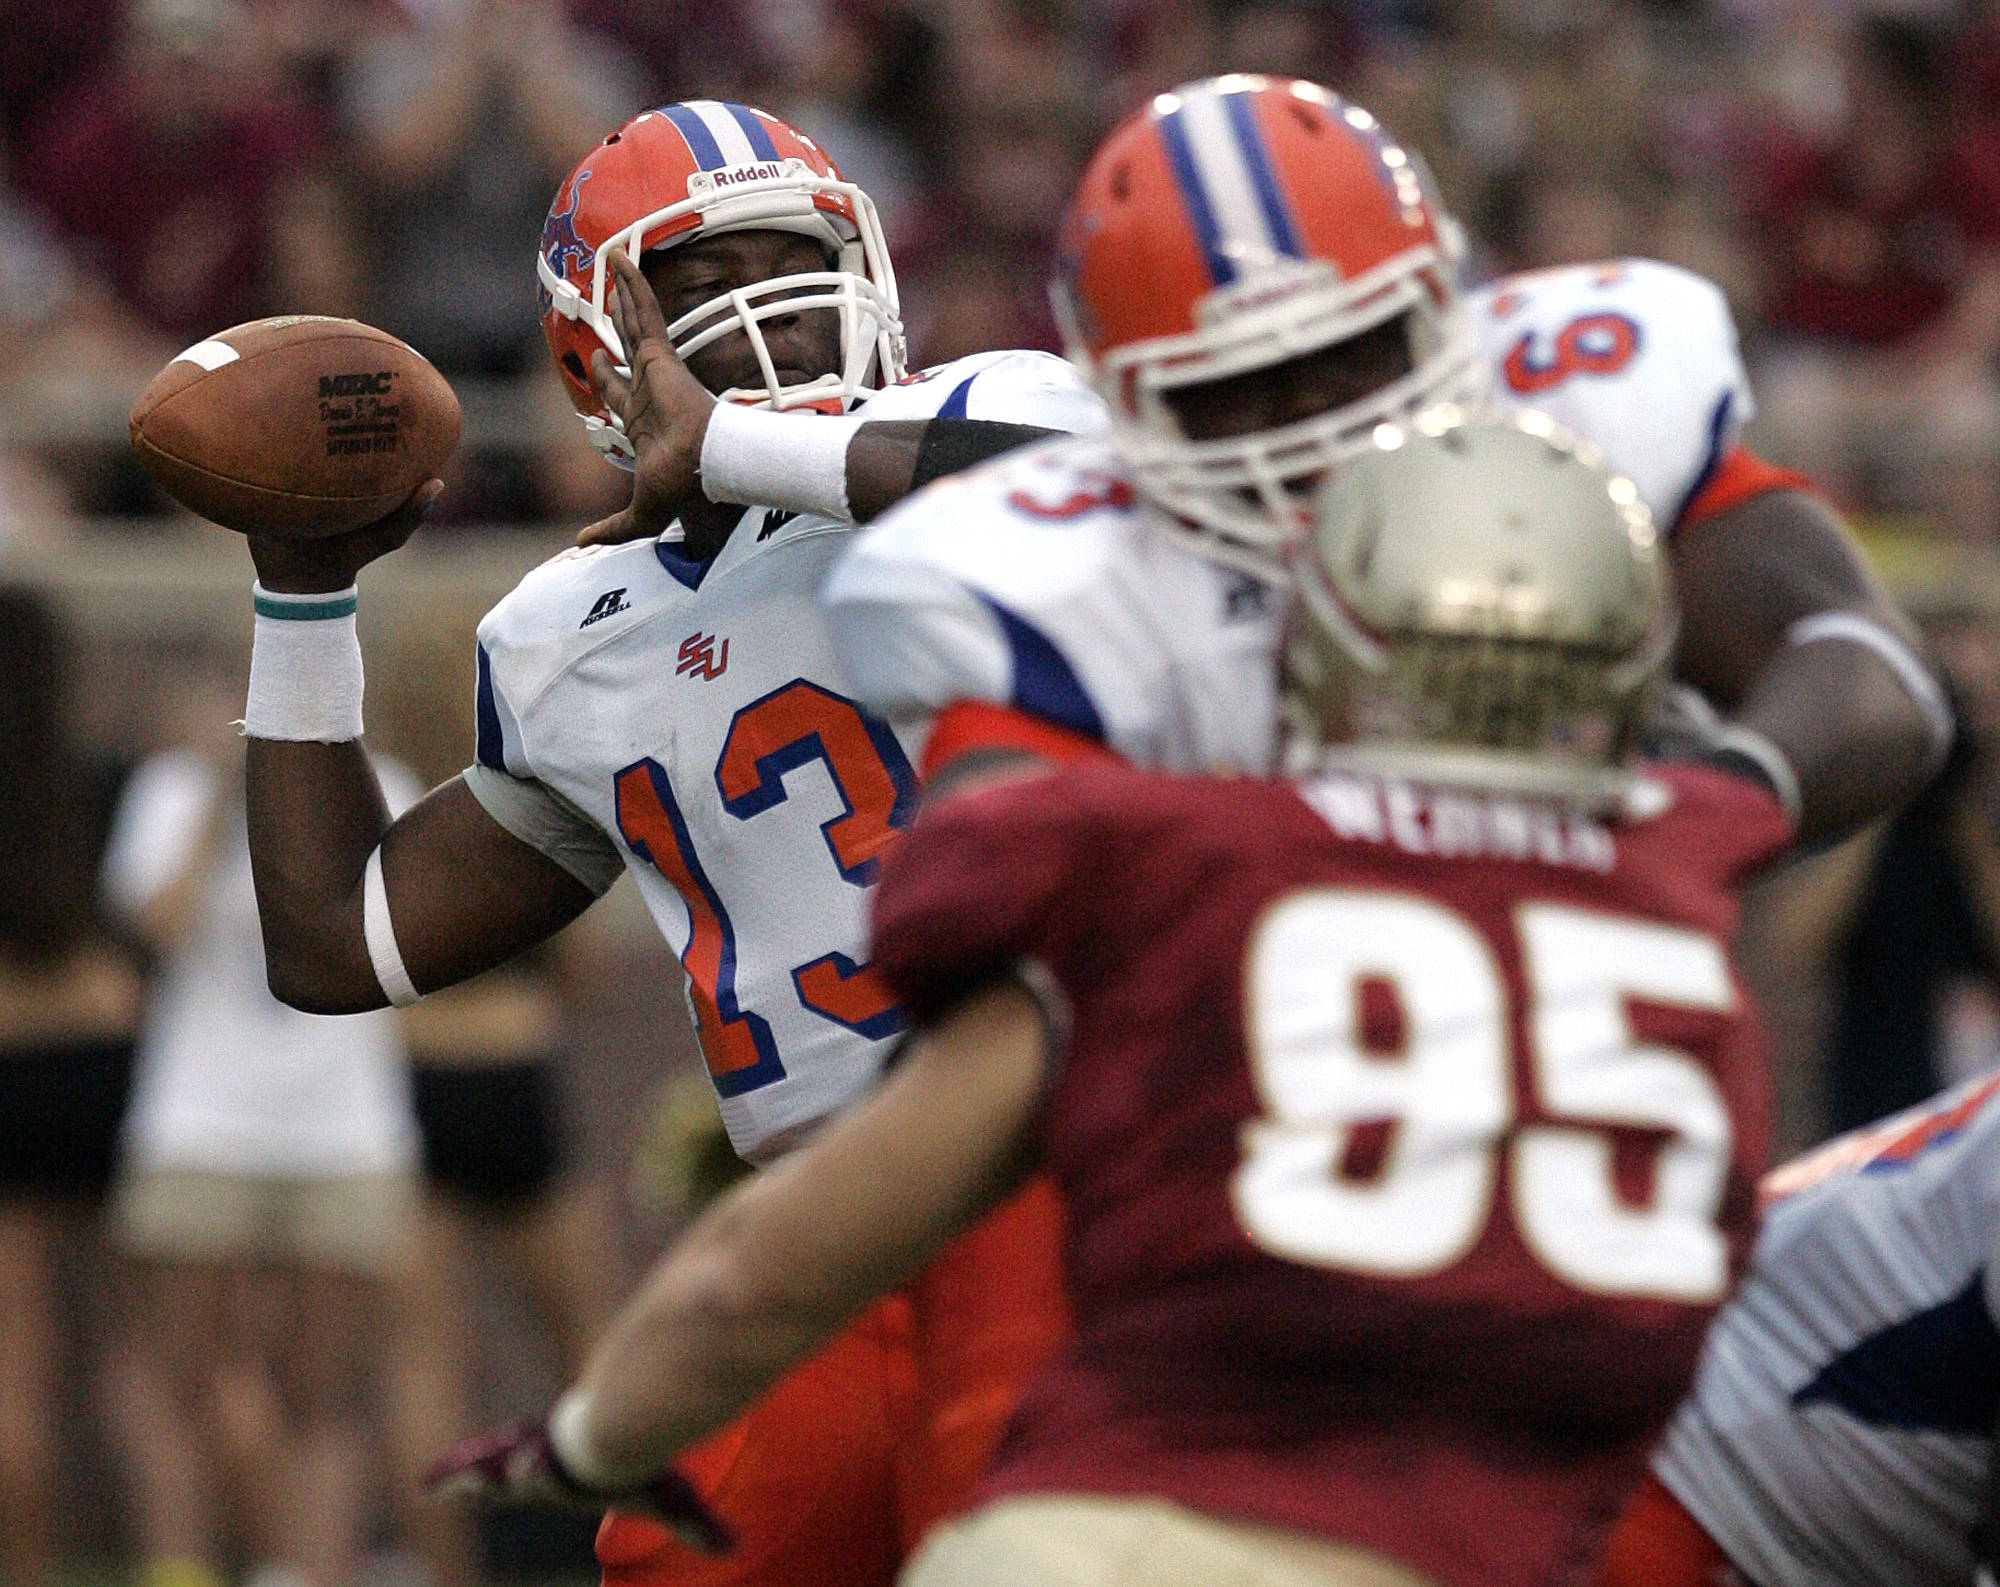 Savannah State's Antonio Bostick, left, looks downfield as he attempts a pass in the first quarter. (AP Photo/Steve Cannon)